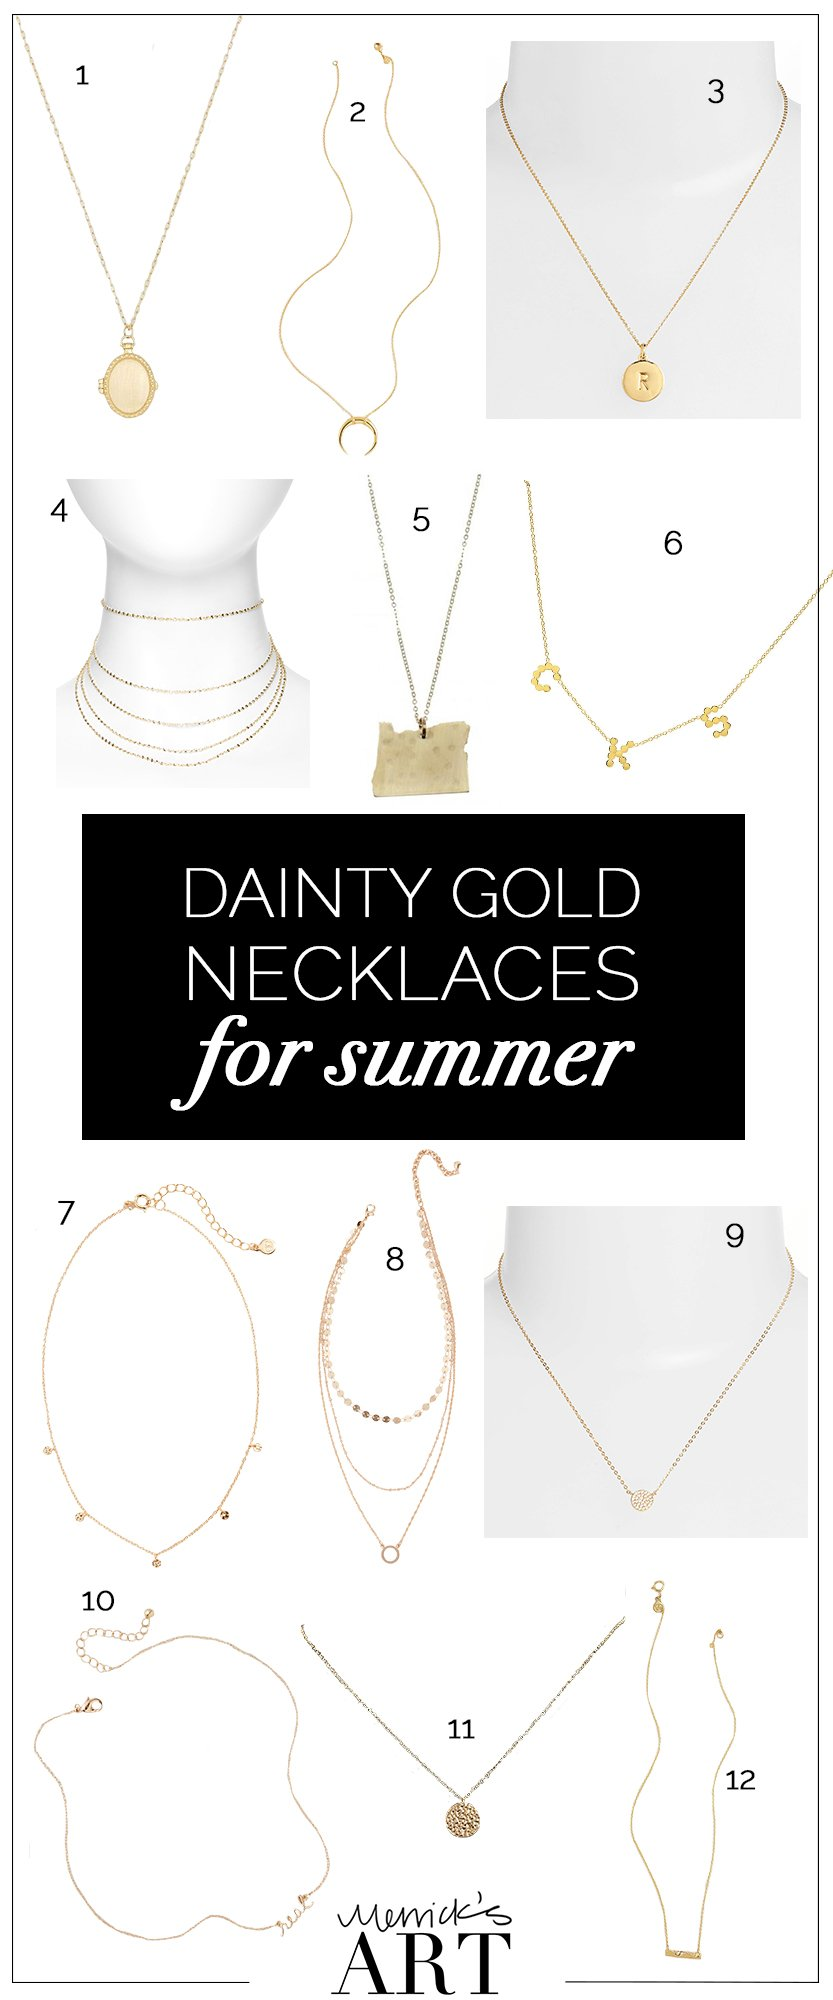 dainty gold necklaces for summer